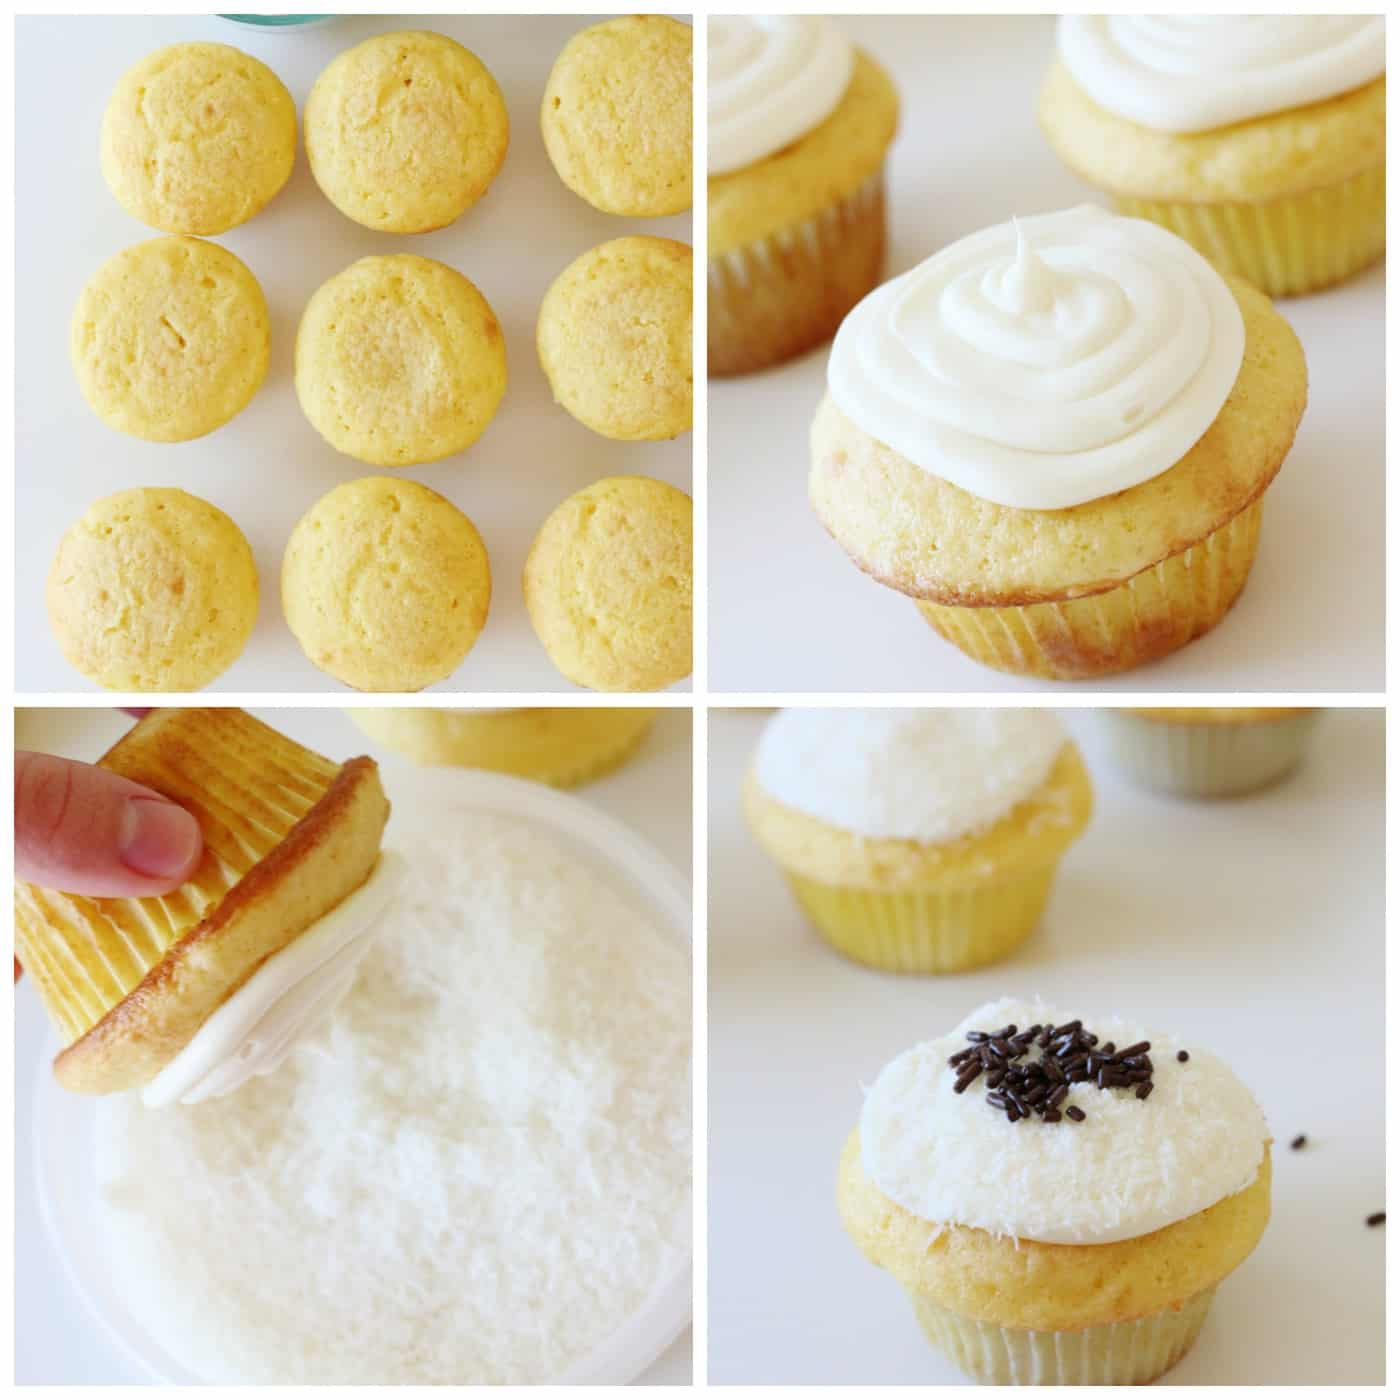 Dipping an iced vanilla cupcake in coconut